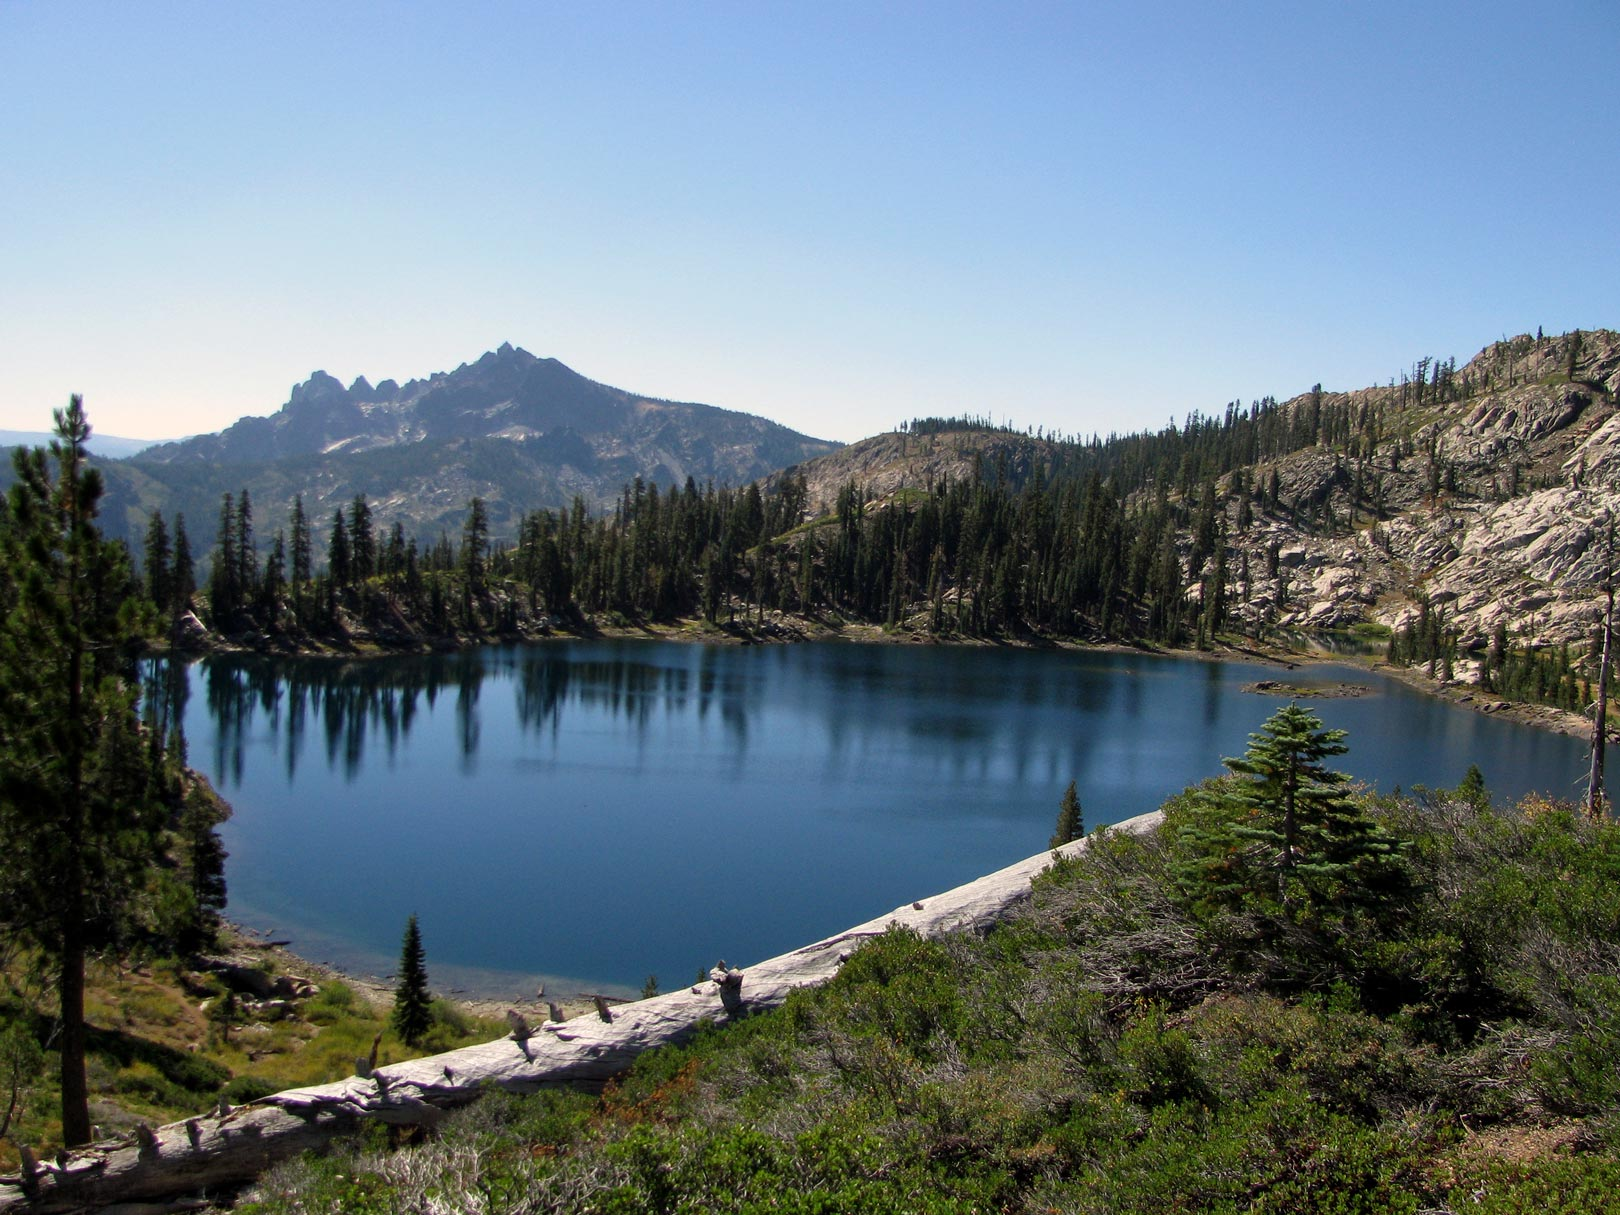 You'll have the chance to visit Deer Lake and take in the grand view of the Sierra Buttes.